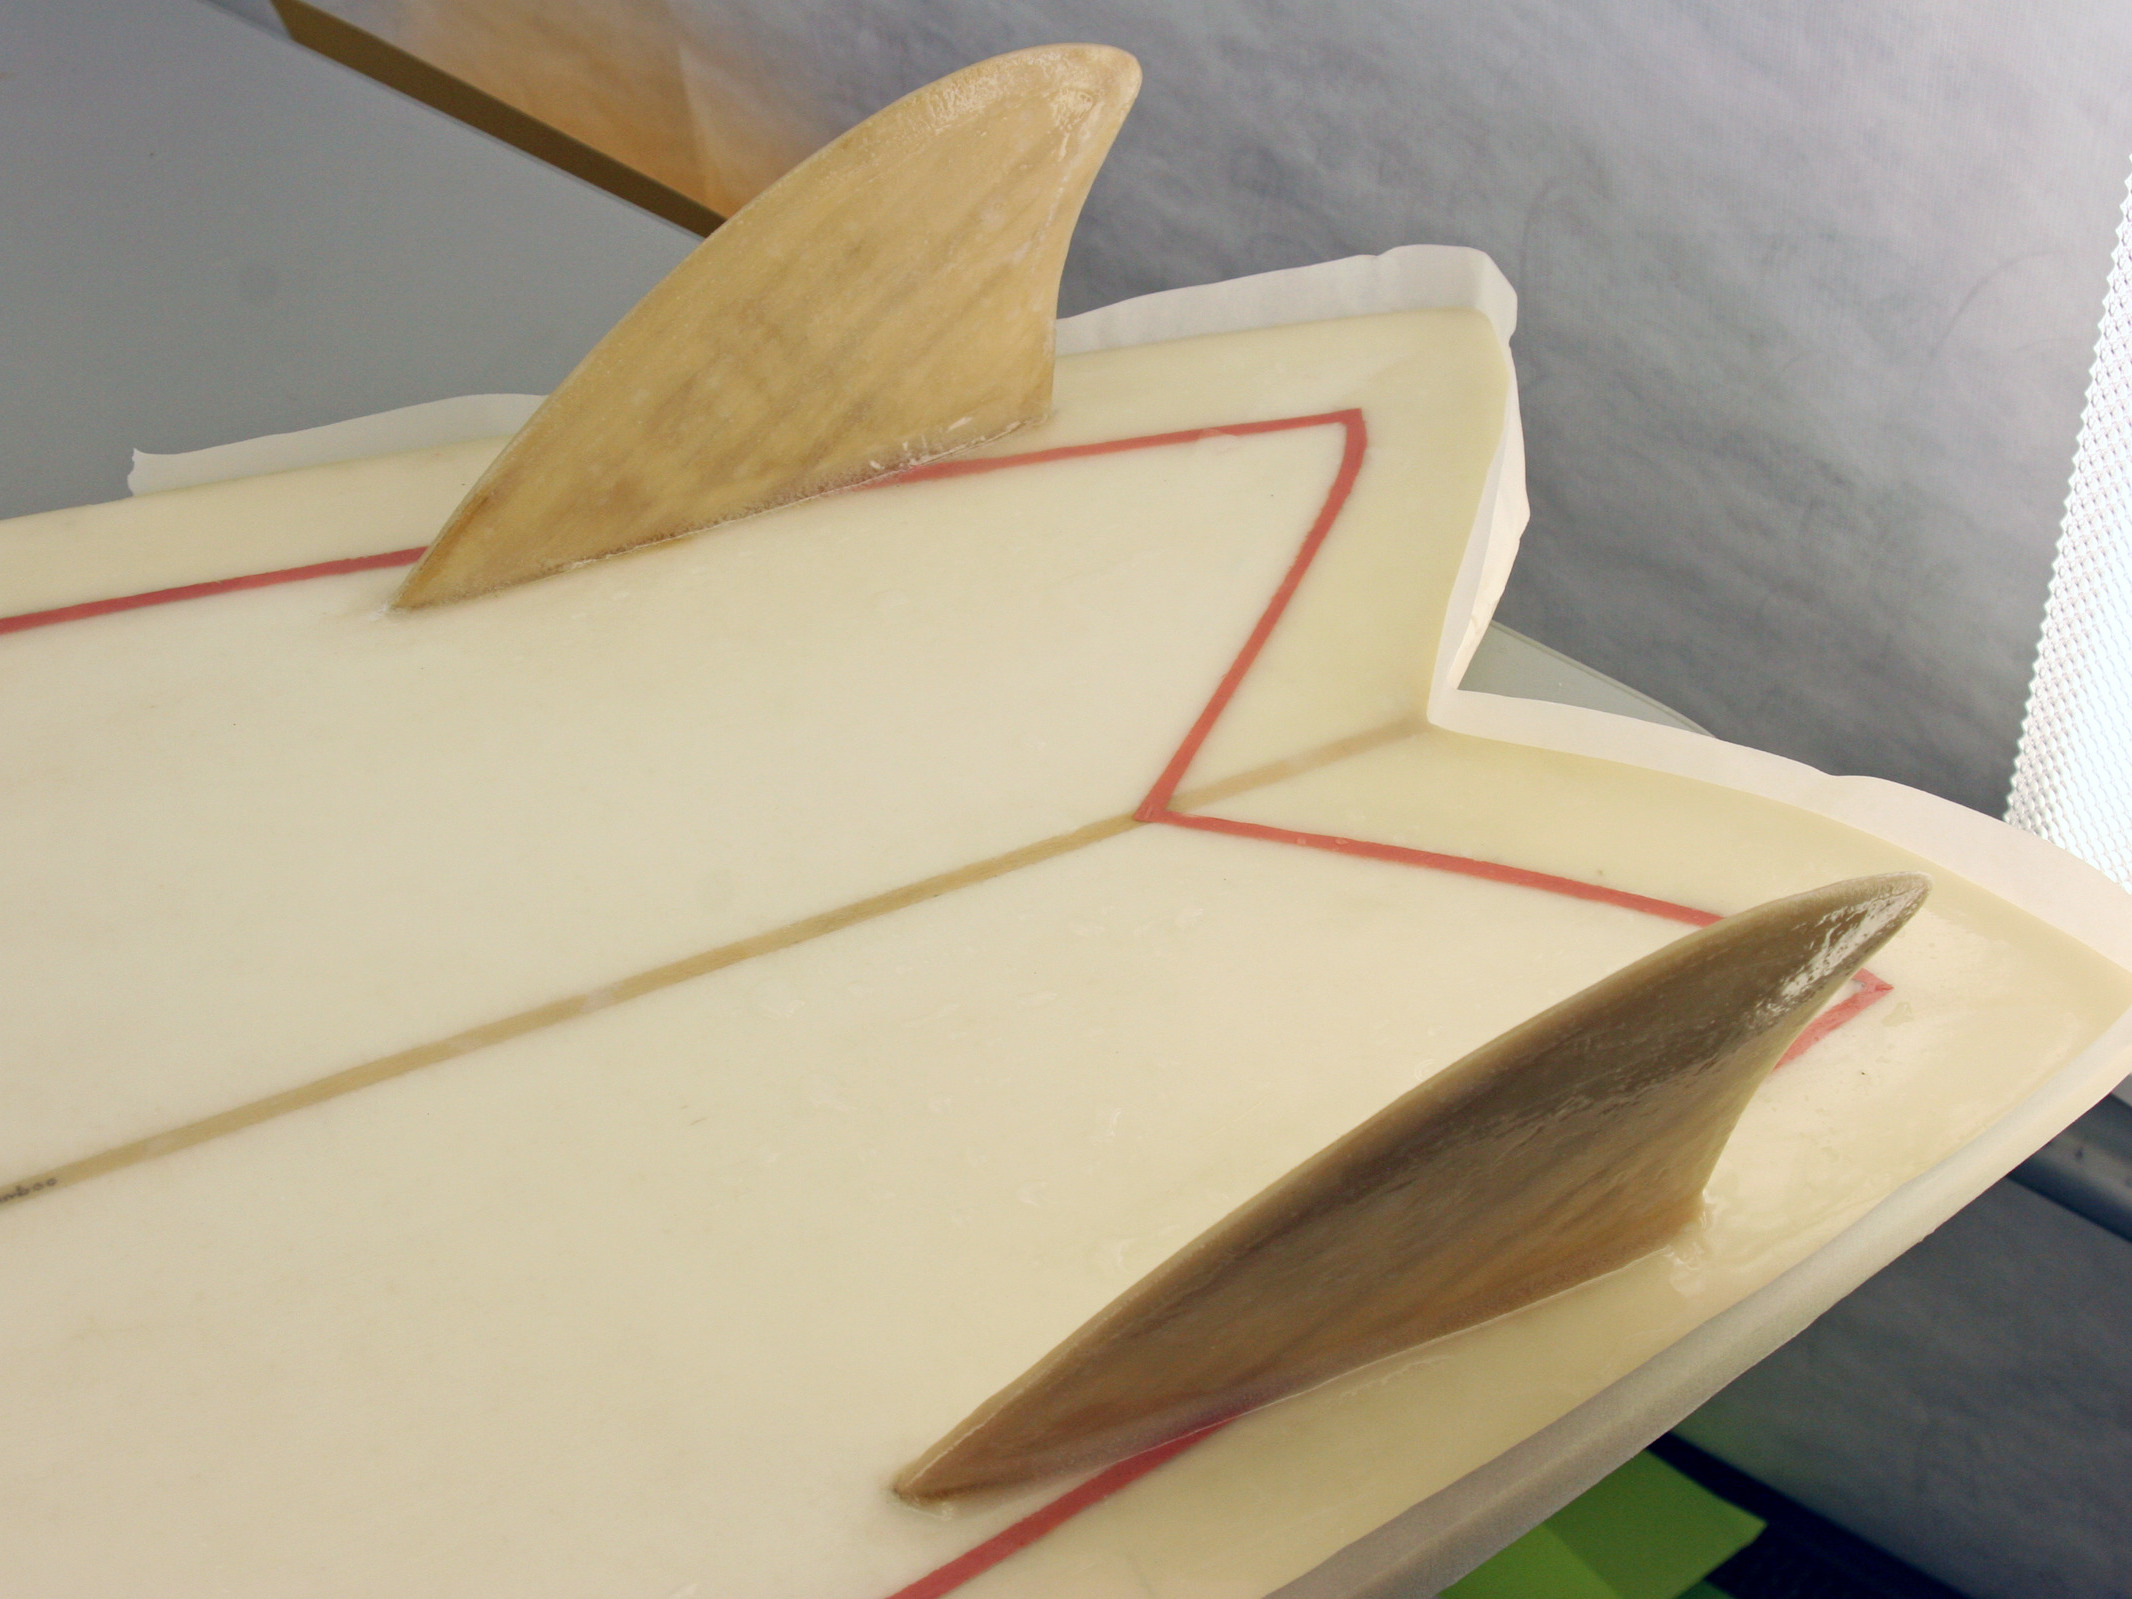 New Project: Greener Surfboard